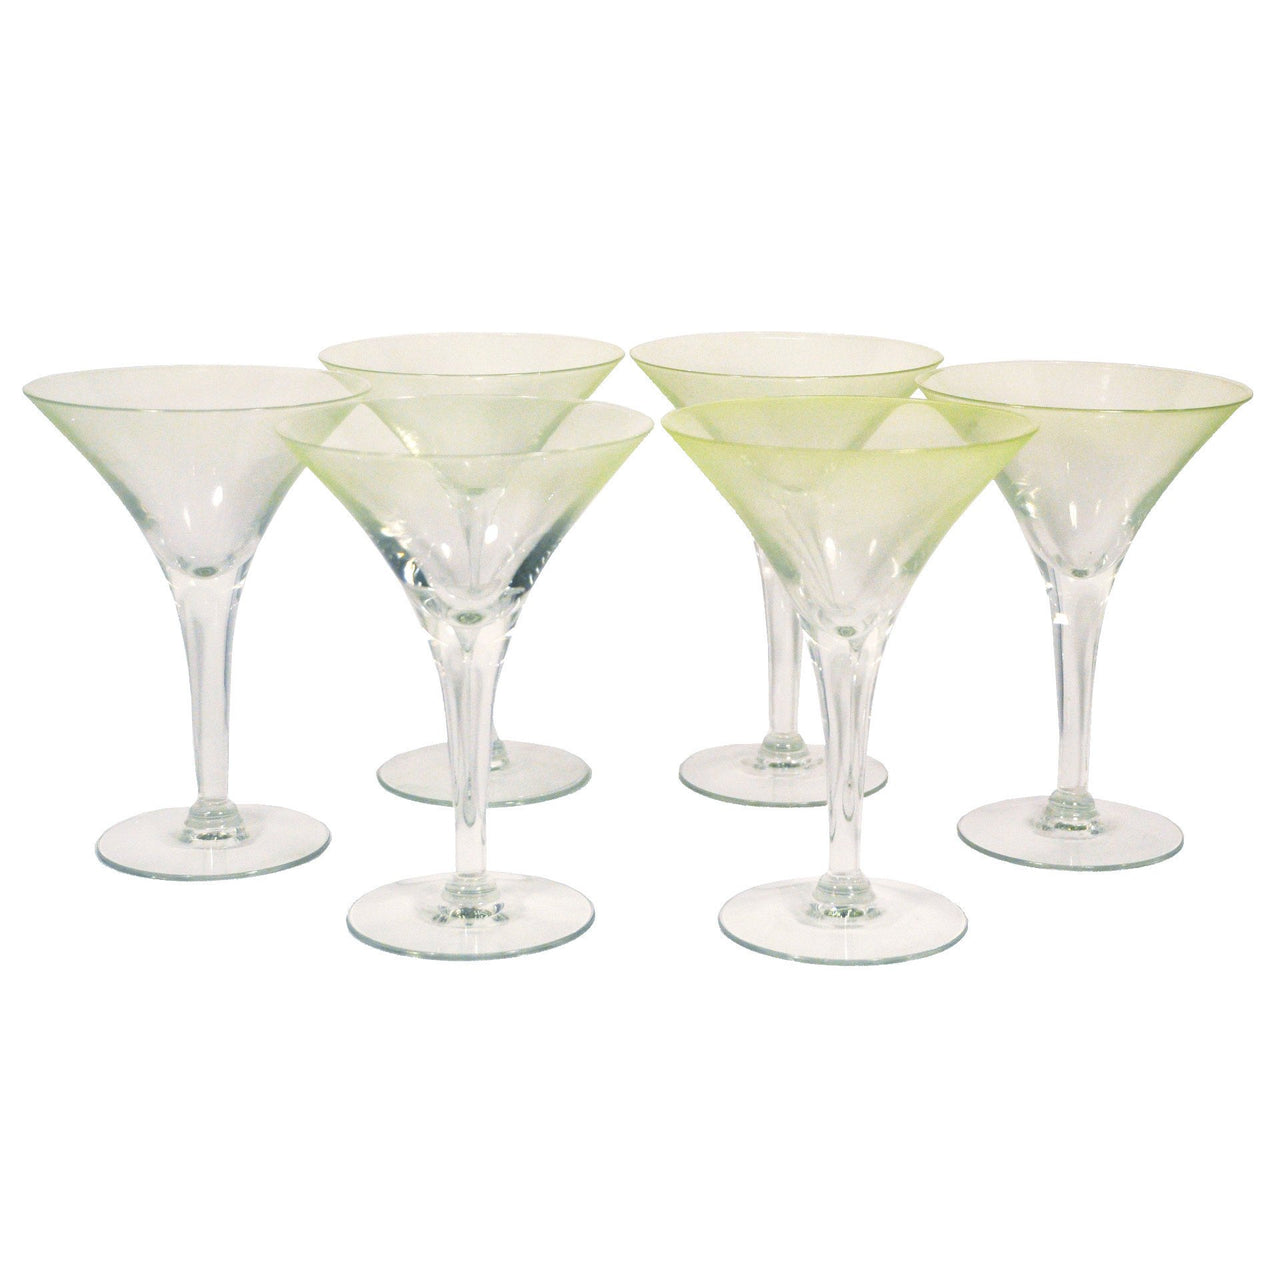 D. Thorpe Green Frosted Cocktail Glasses | The Hour Vintage